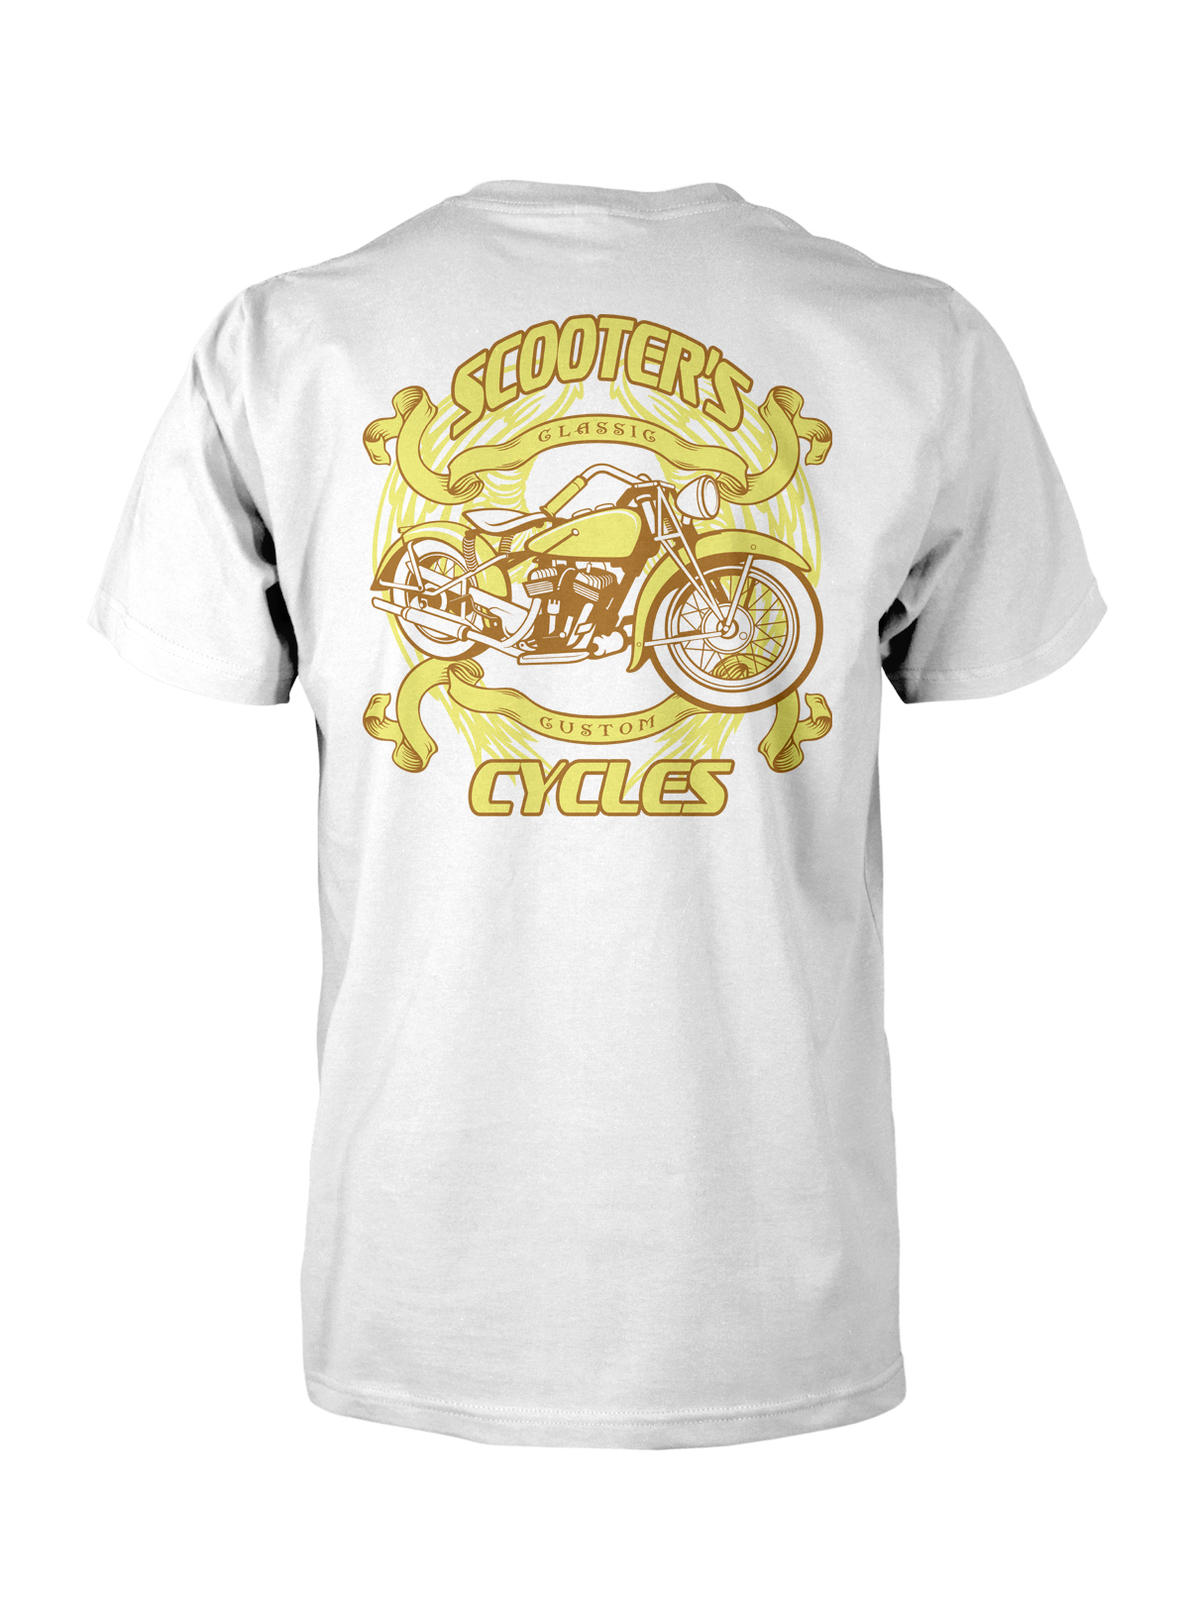 Design custom made mens t-shirts online. Free shipping, bulk discounts and no minimums or setups for custom made mens t-shirts. Free design templates. Over 10 million customer designs since